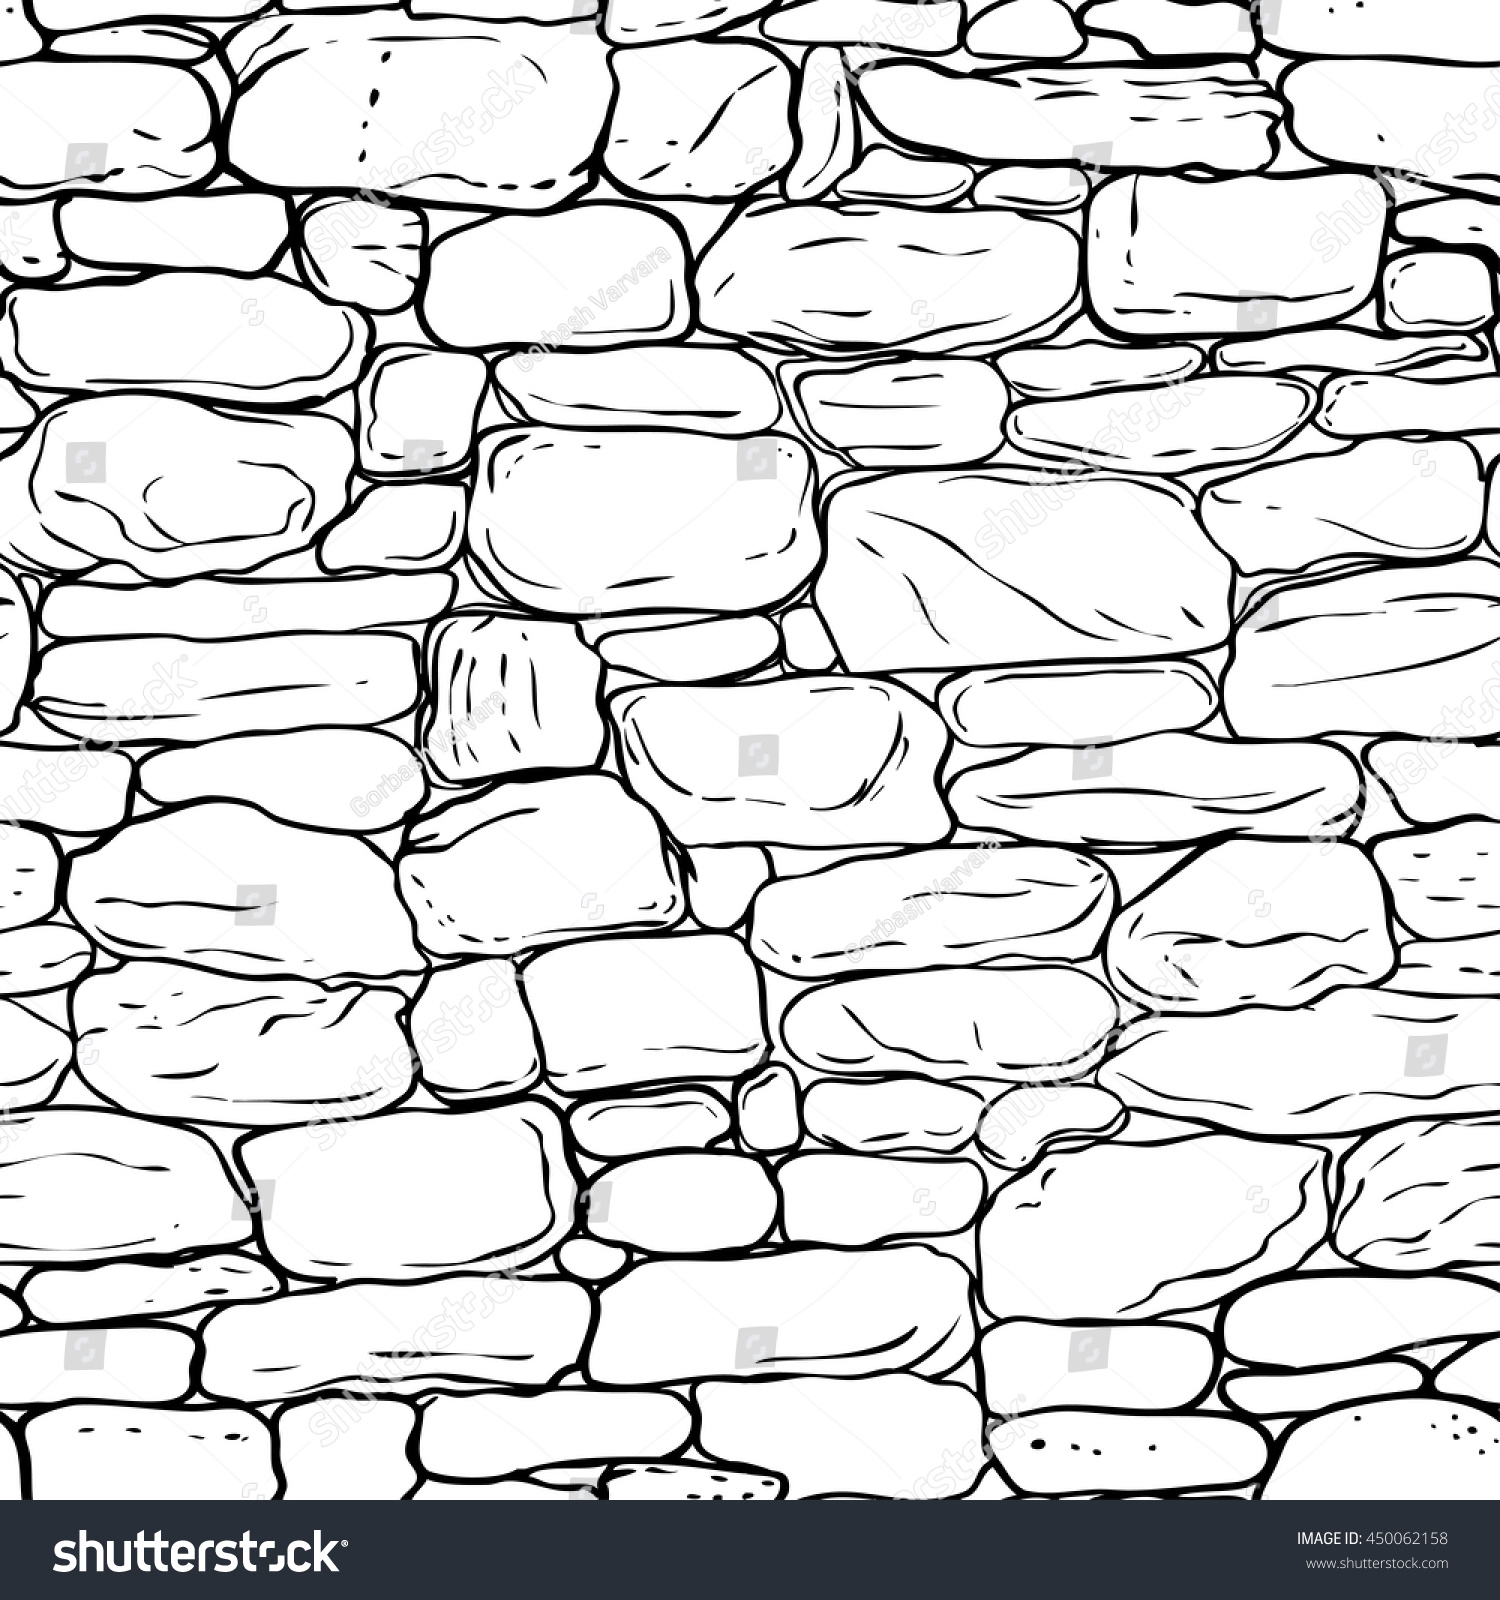 online image   photo editor shutterstock editor old stone wall clipart stone wall clipart art line art